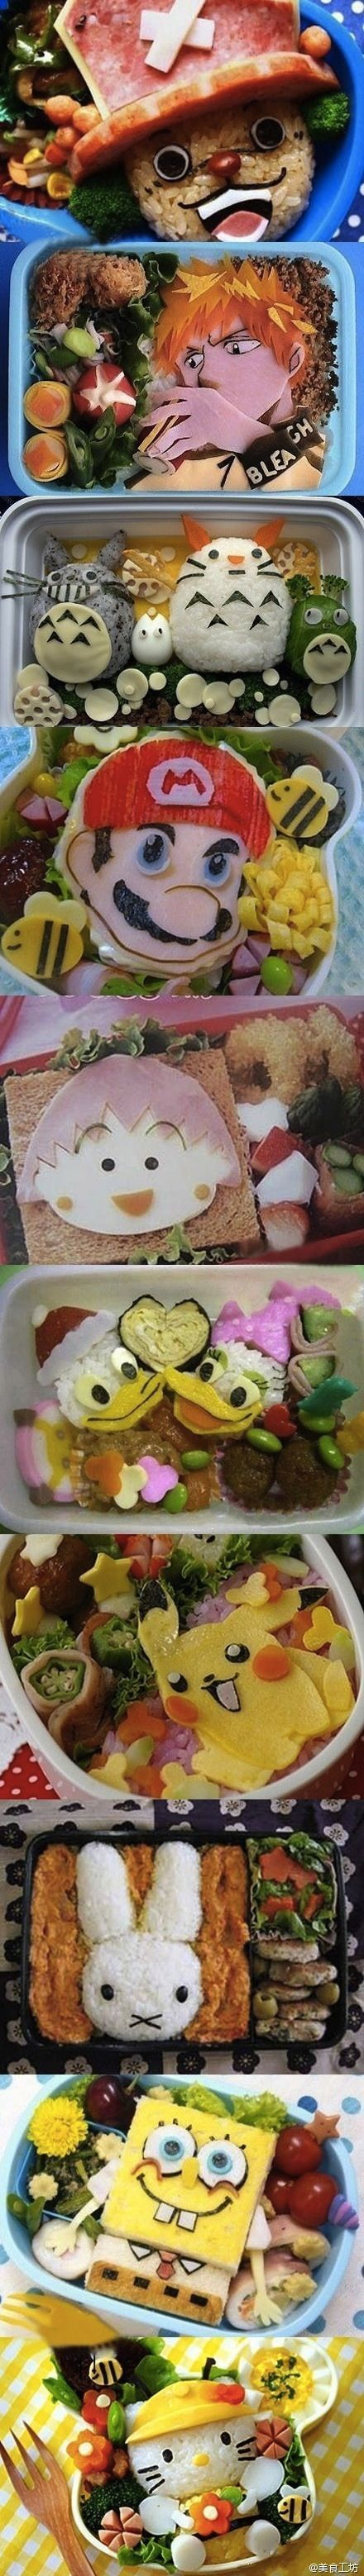 Bento Box Awesomeness